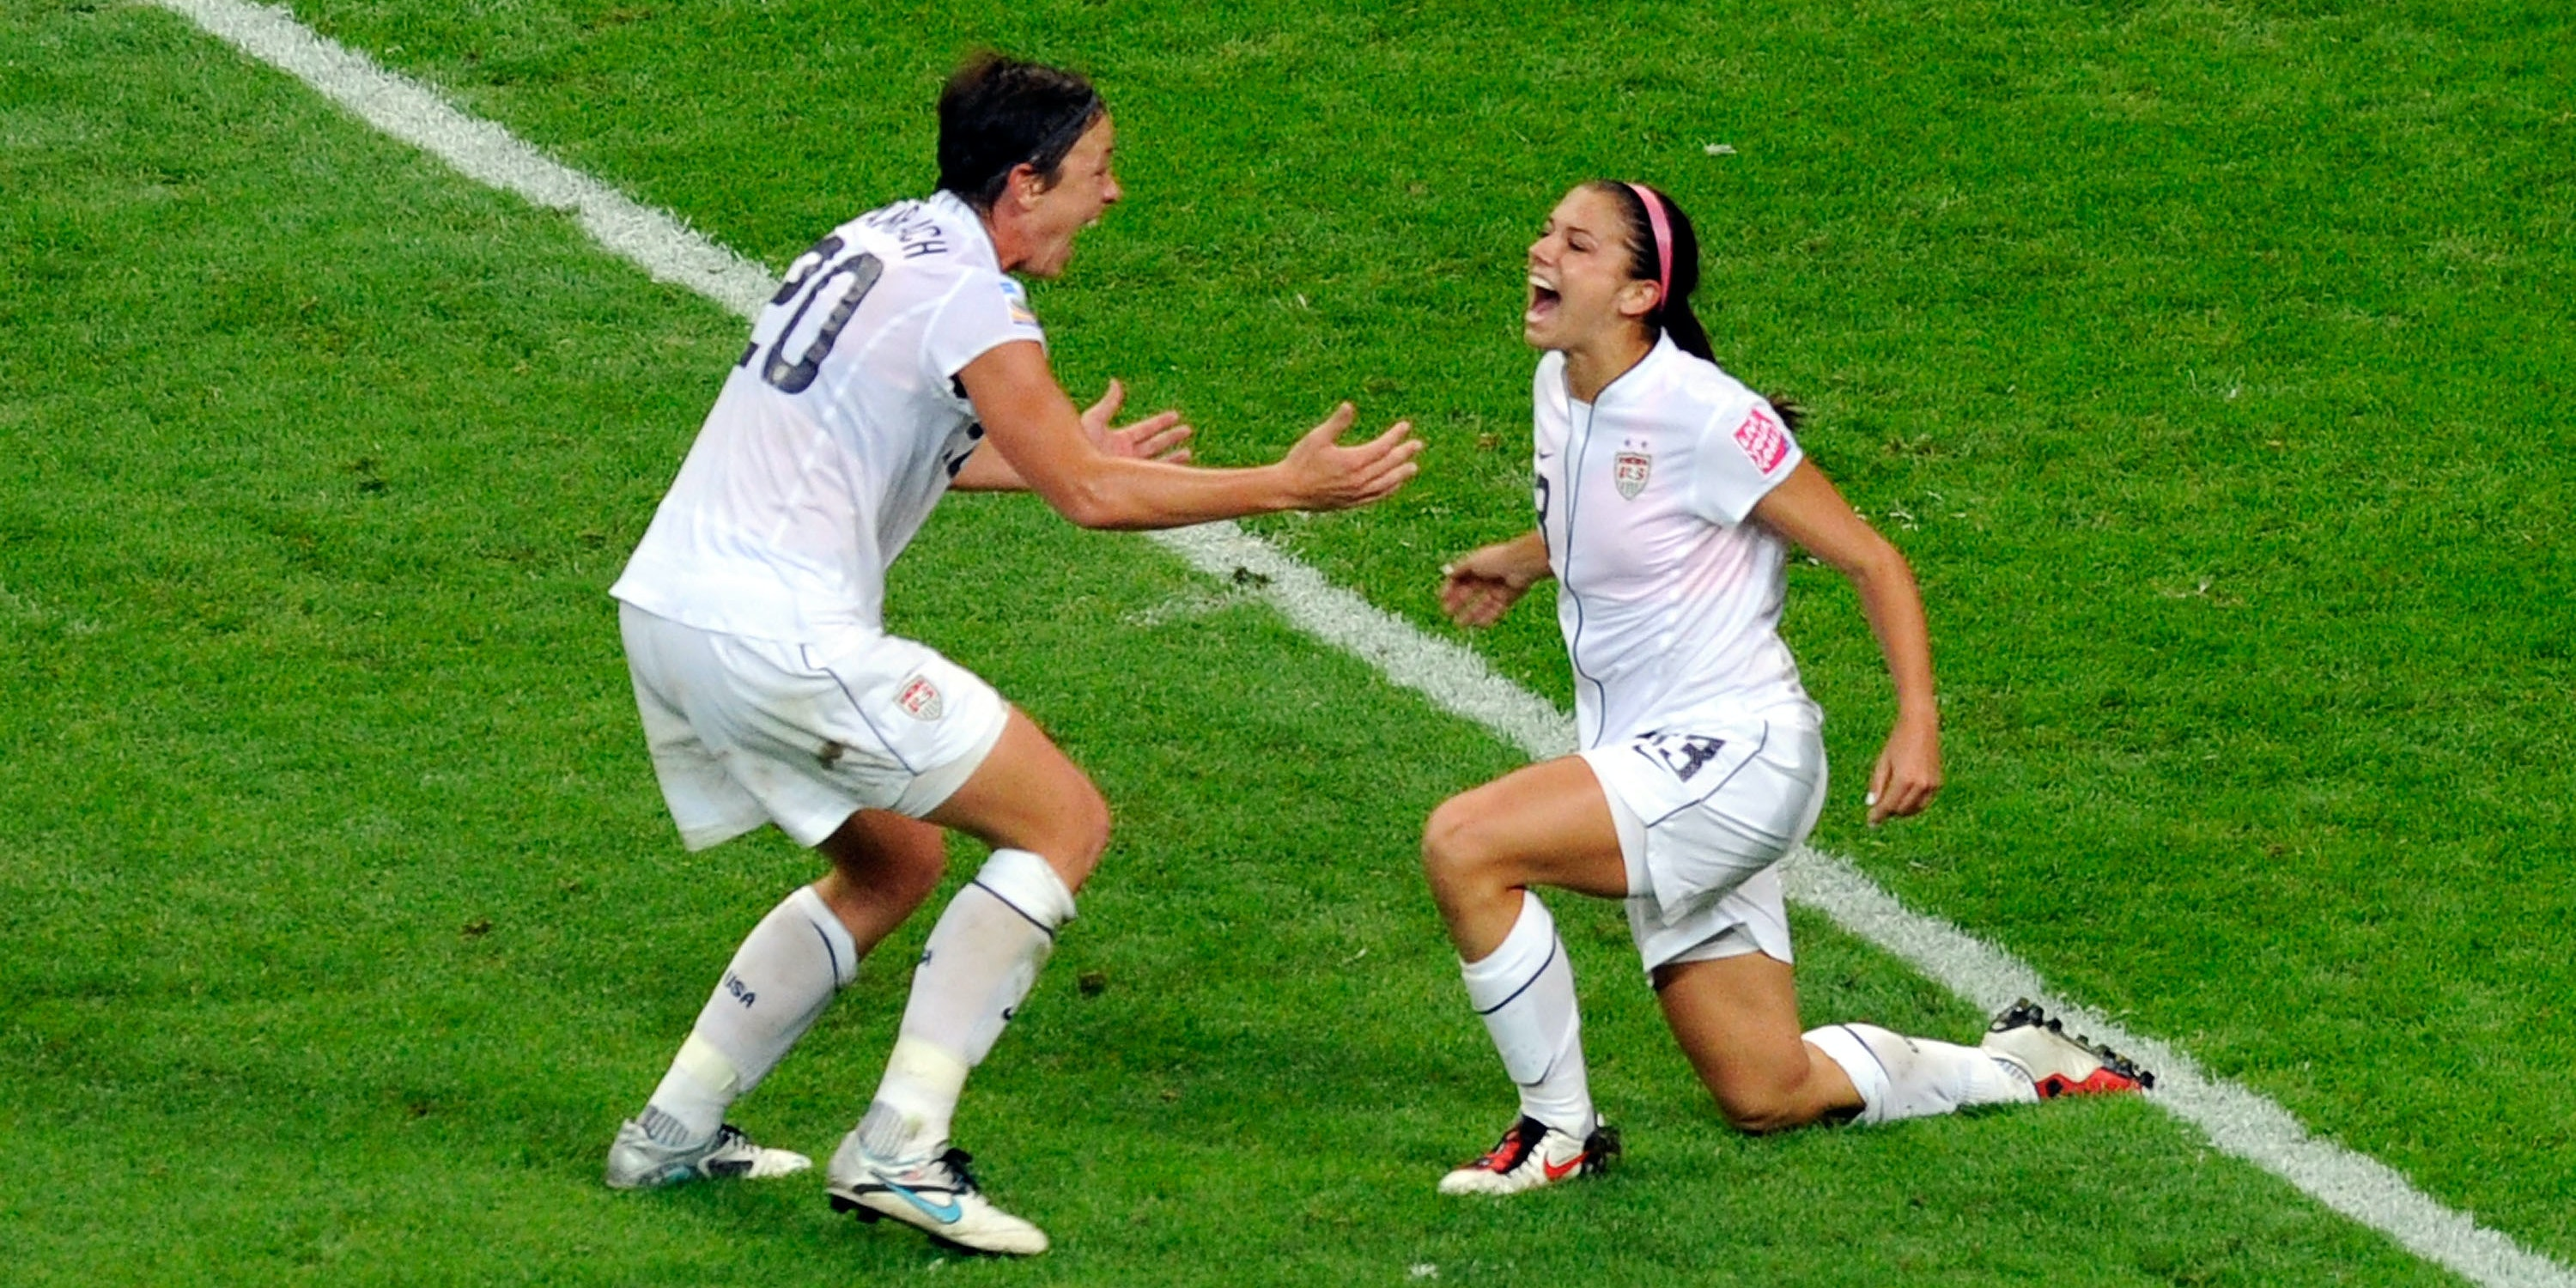 FRANKFURT AM MAIN, GERMANY - JULY 17: Alex Morgan (R) of United States celebrates with team mate Abby Wambach after scoring her teams first goal during the FIFA Womens's World Cup Final between the United States of America and Japan at FIFA Word Cup stadium on July 17, 2011 in Frankfurt am Main, Germany. (Photo by Thorsten Wagner/Getty Images)